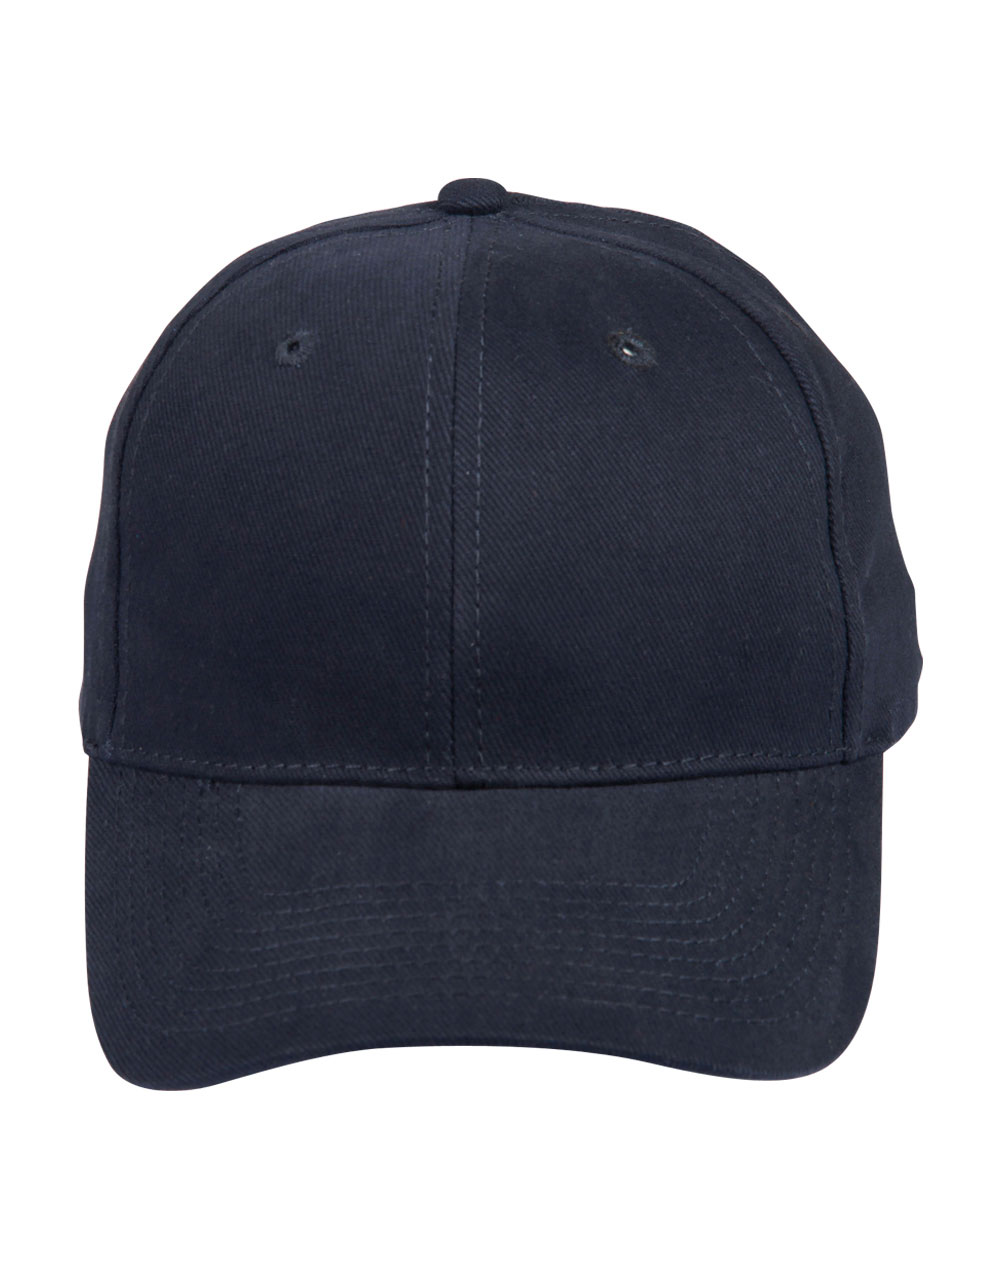 AHD Cap Heavy Brushed Cotton